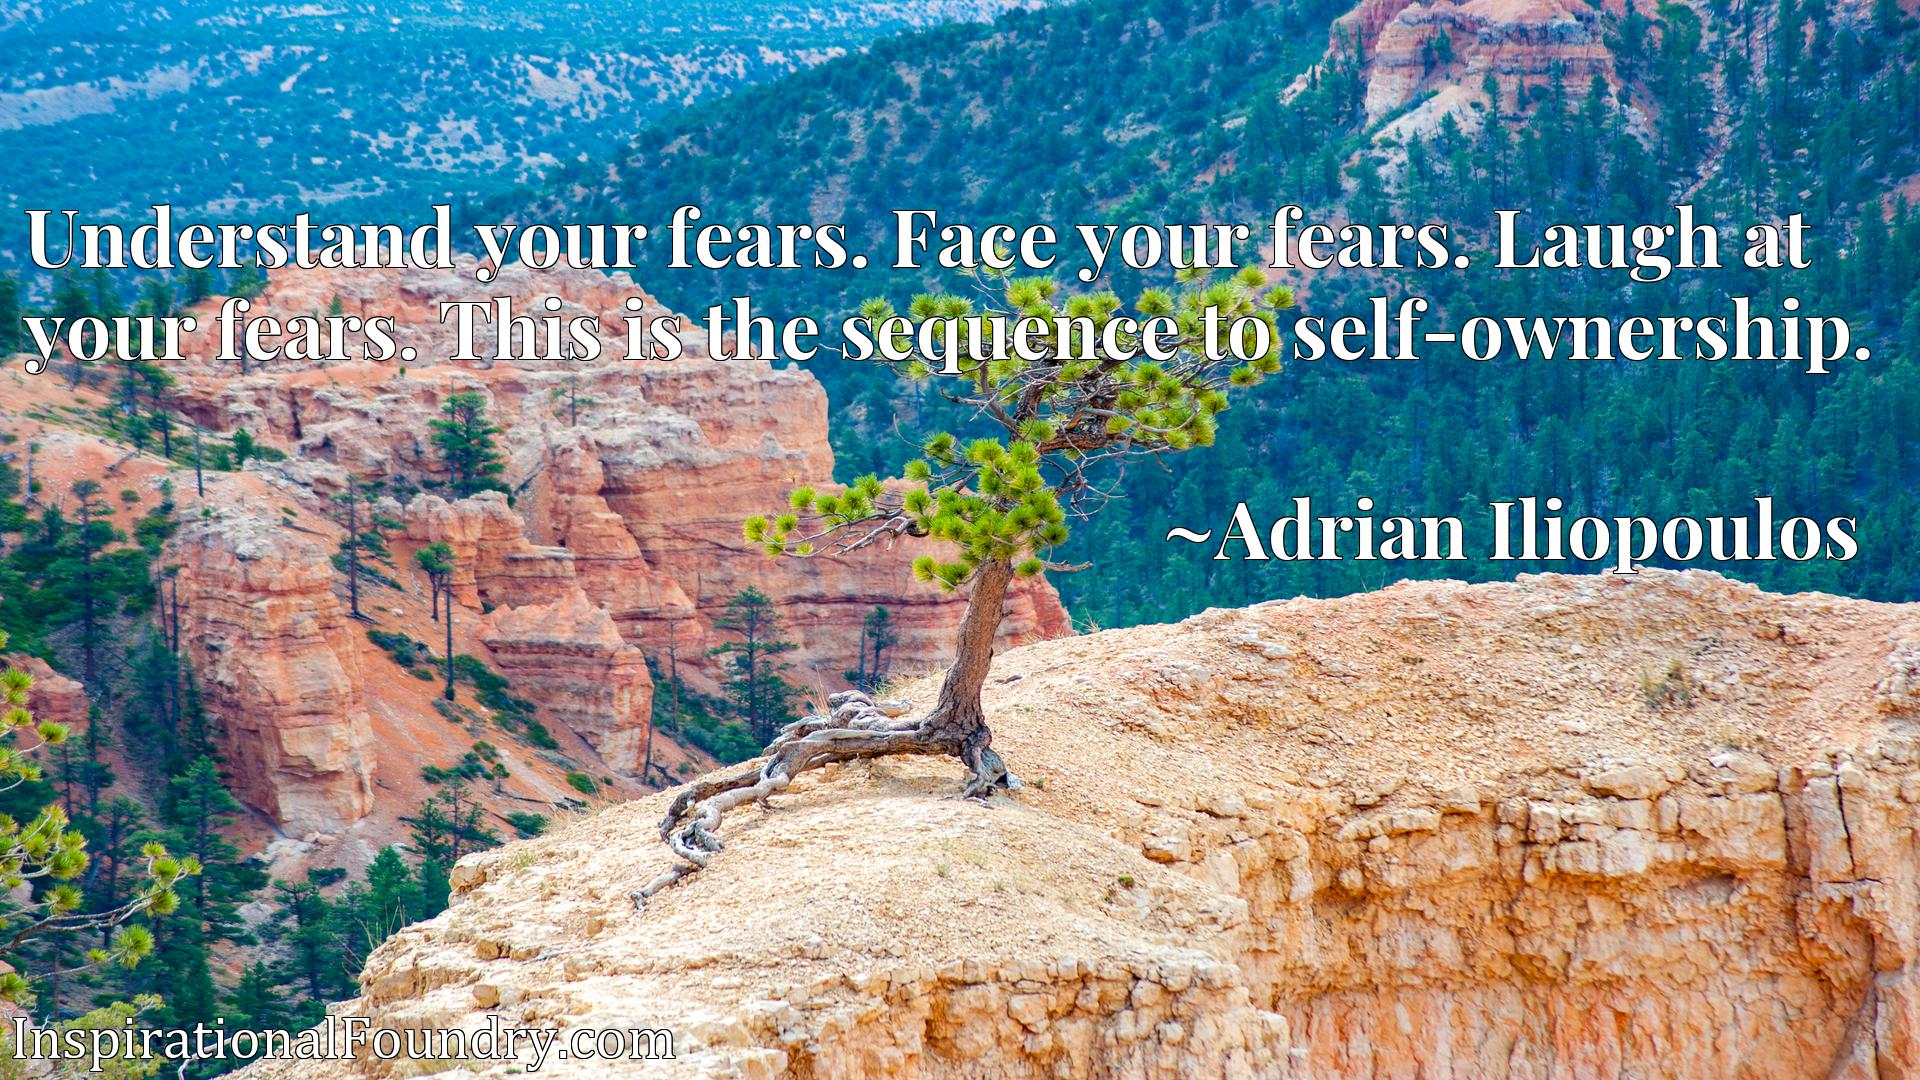 Understand your fears. Face your fears. Laugh at your fears. This is the sequence to self-ownership.